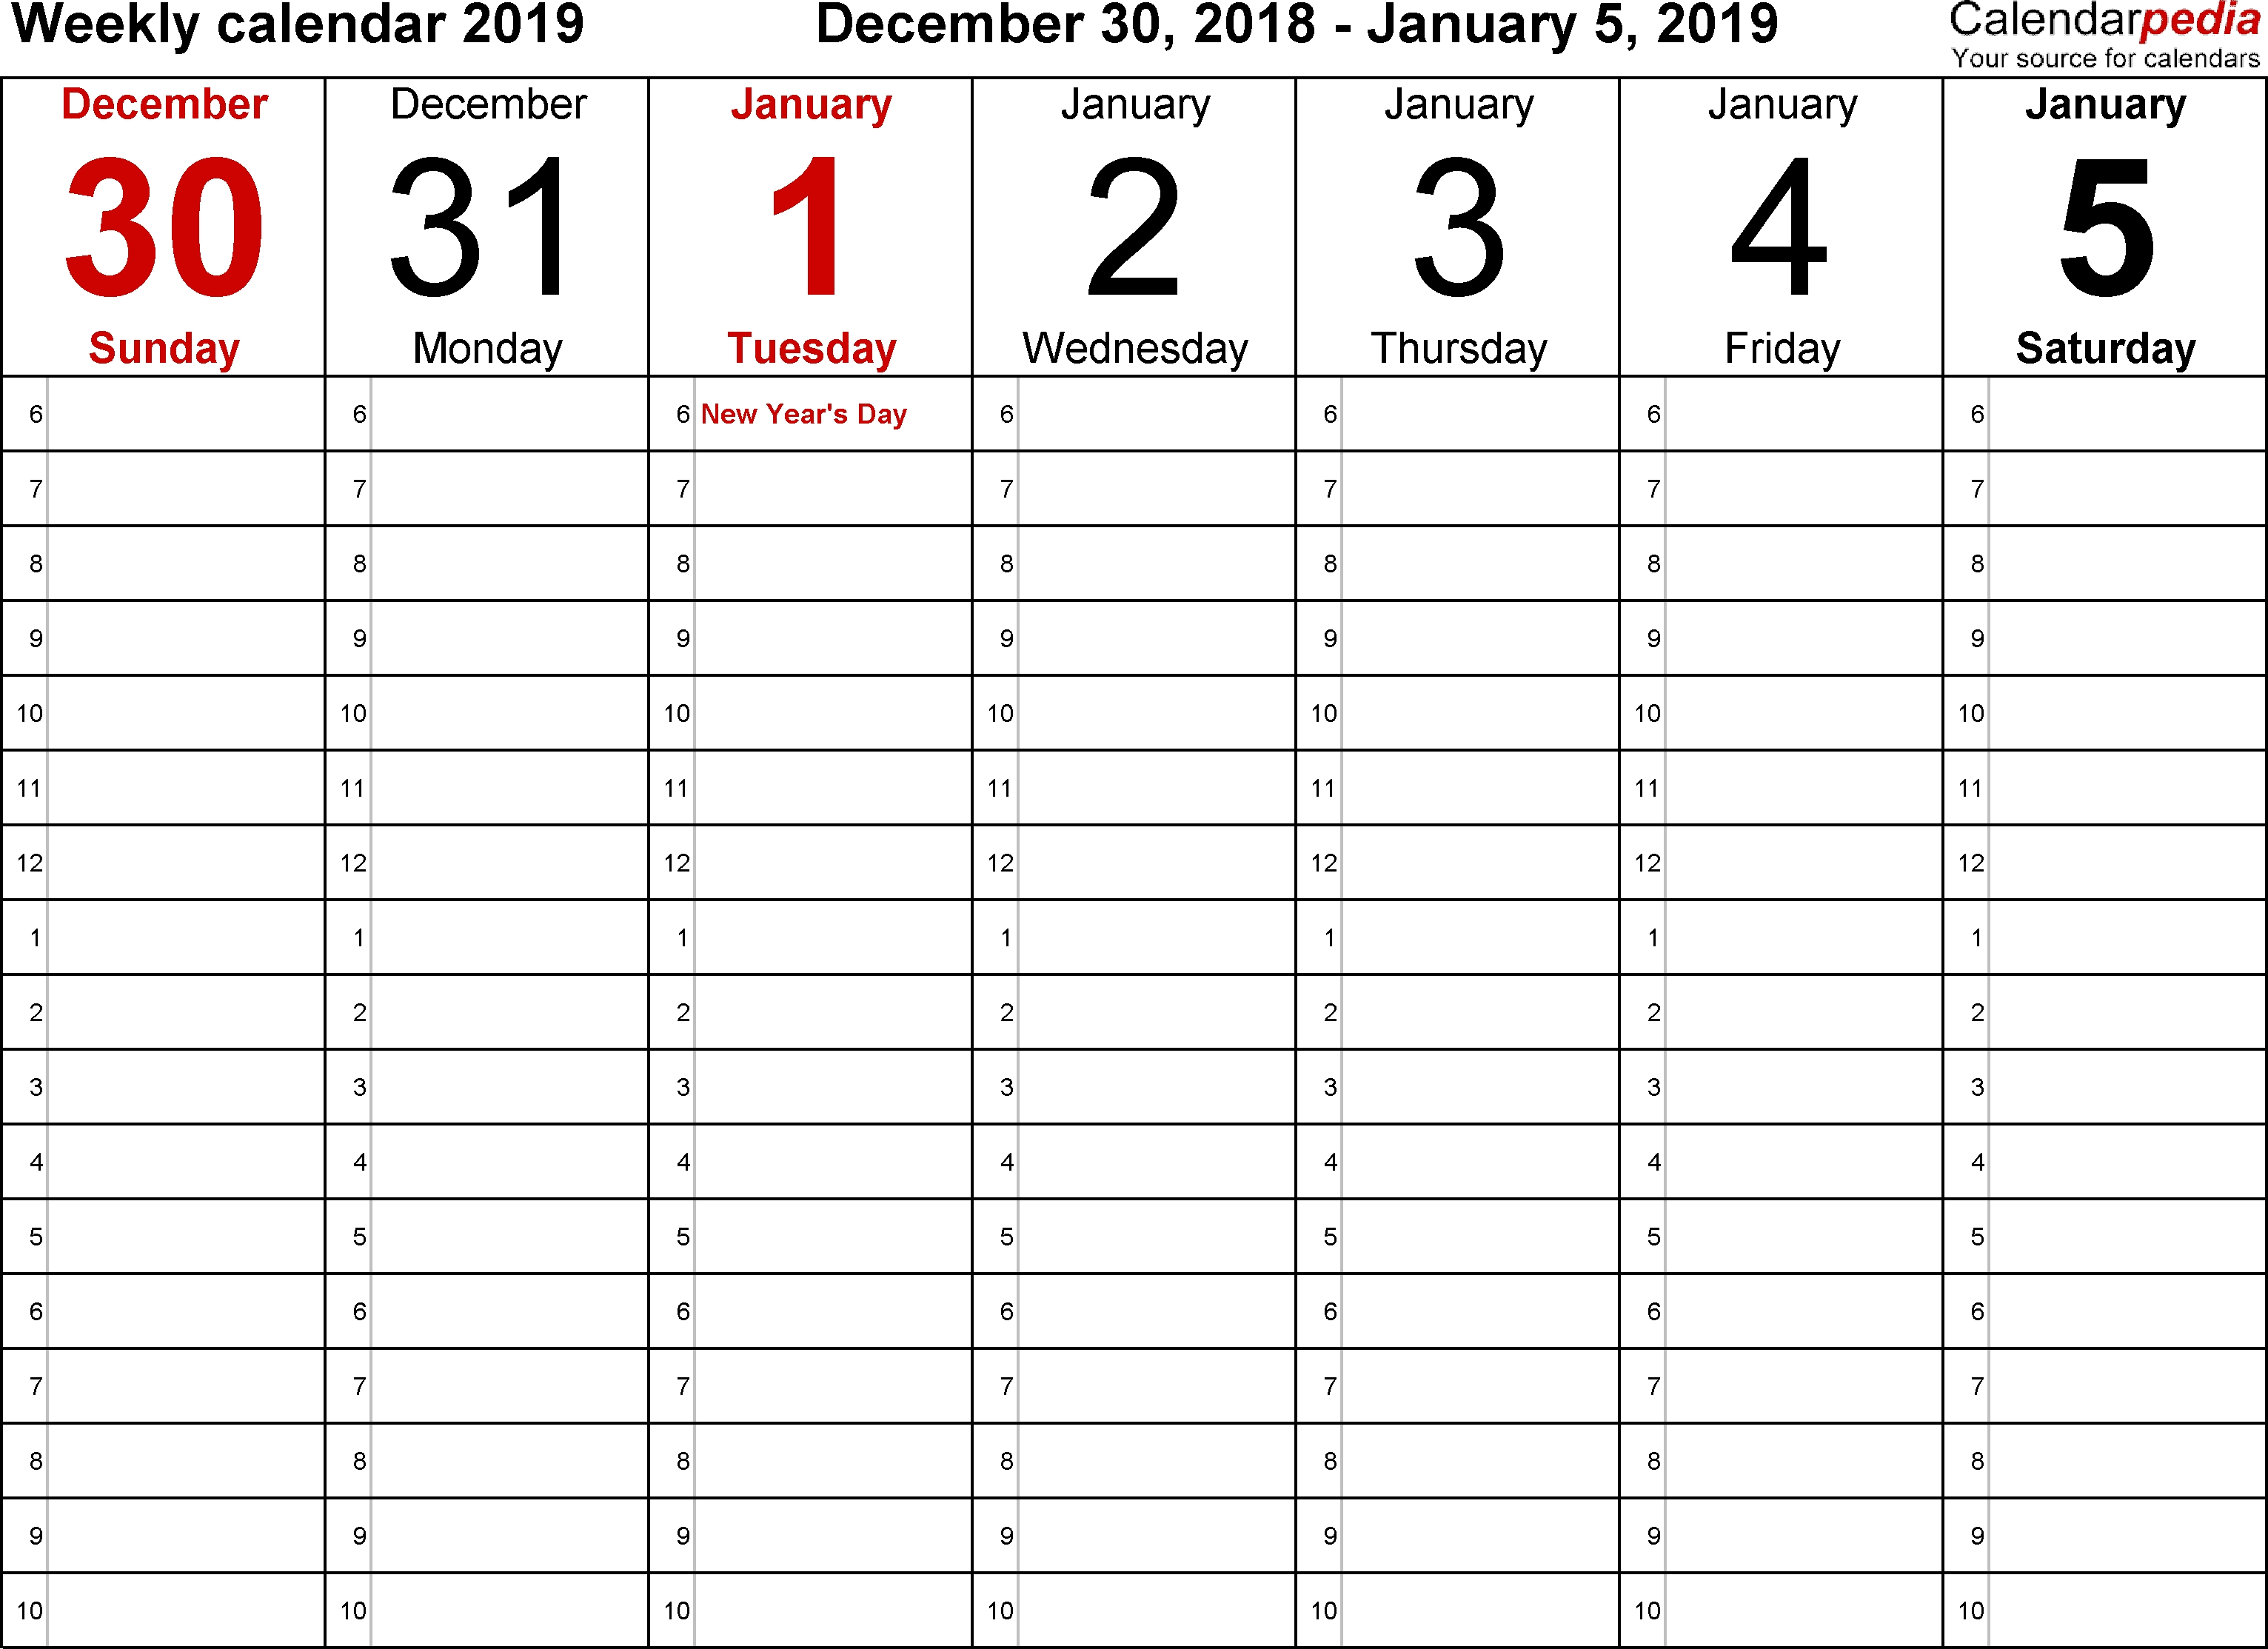 Weekly Calendars 2019 For Word - 12 Free Printable Templates